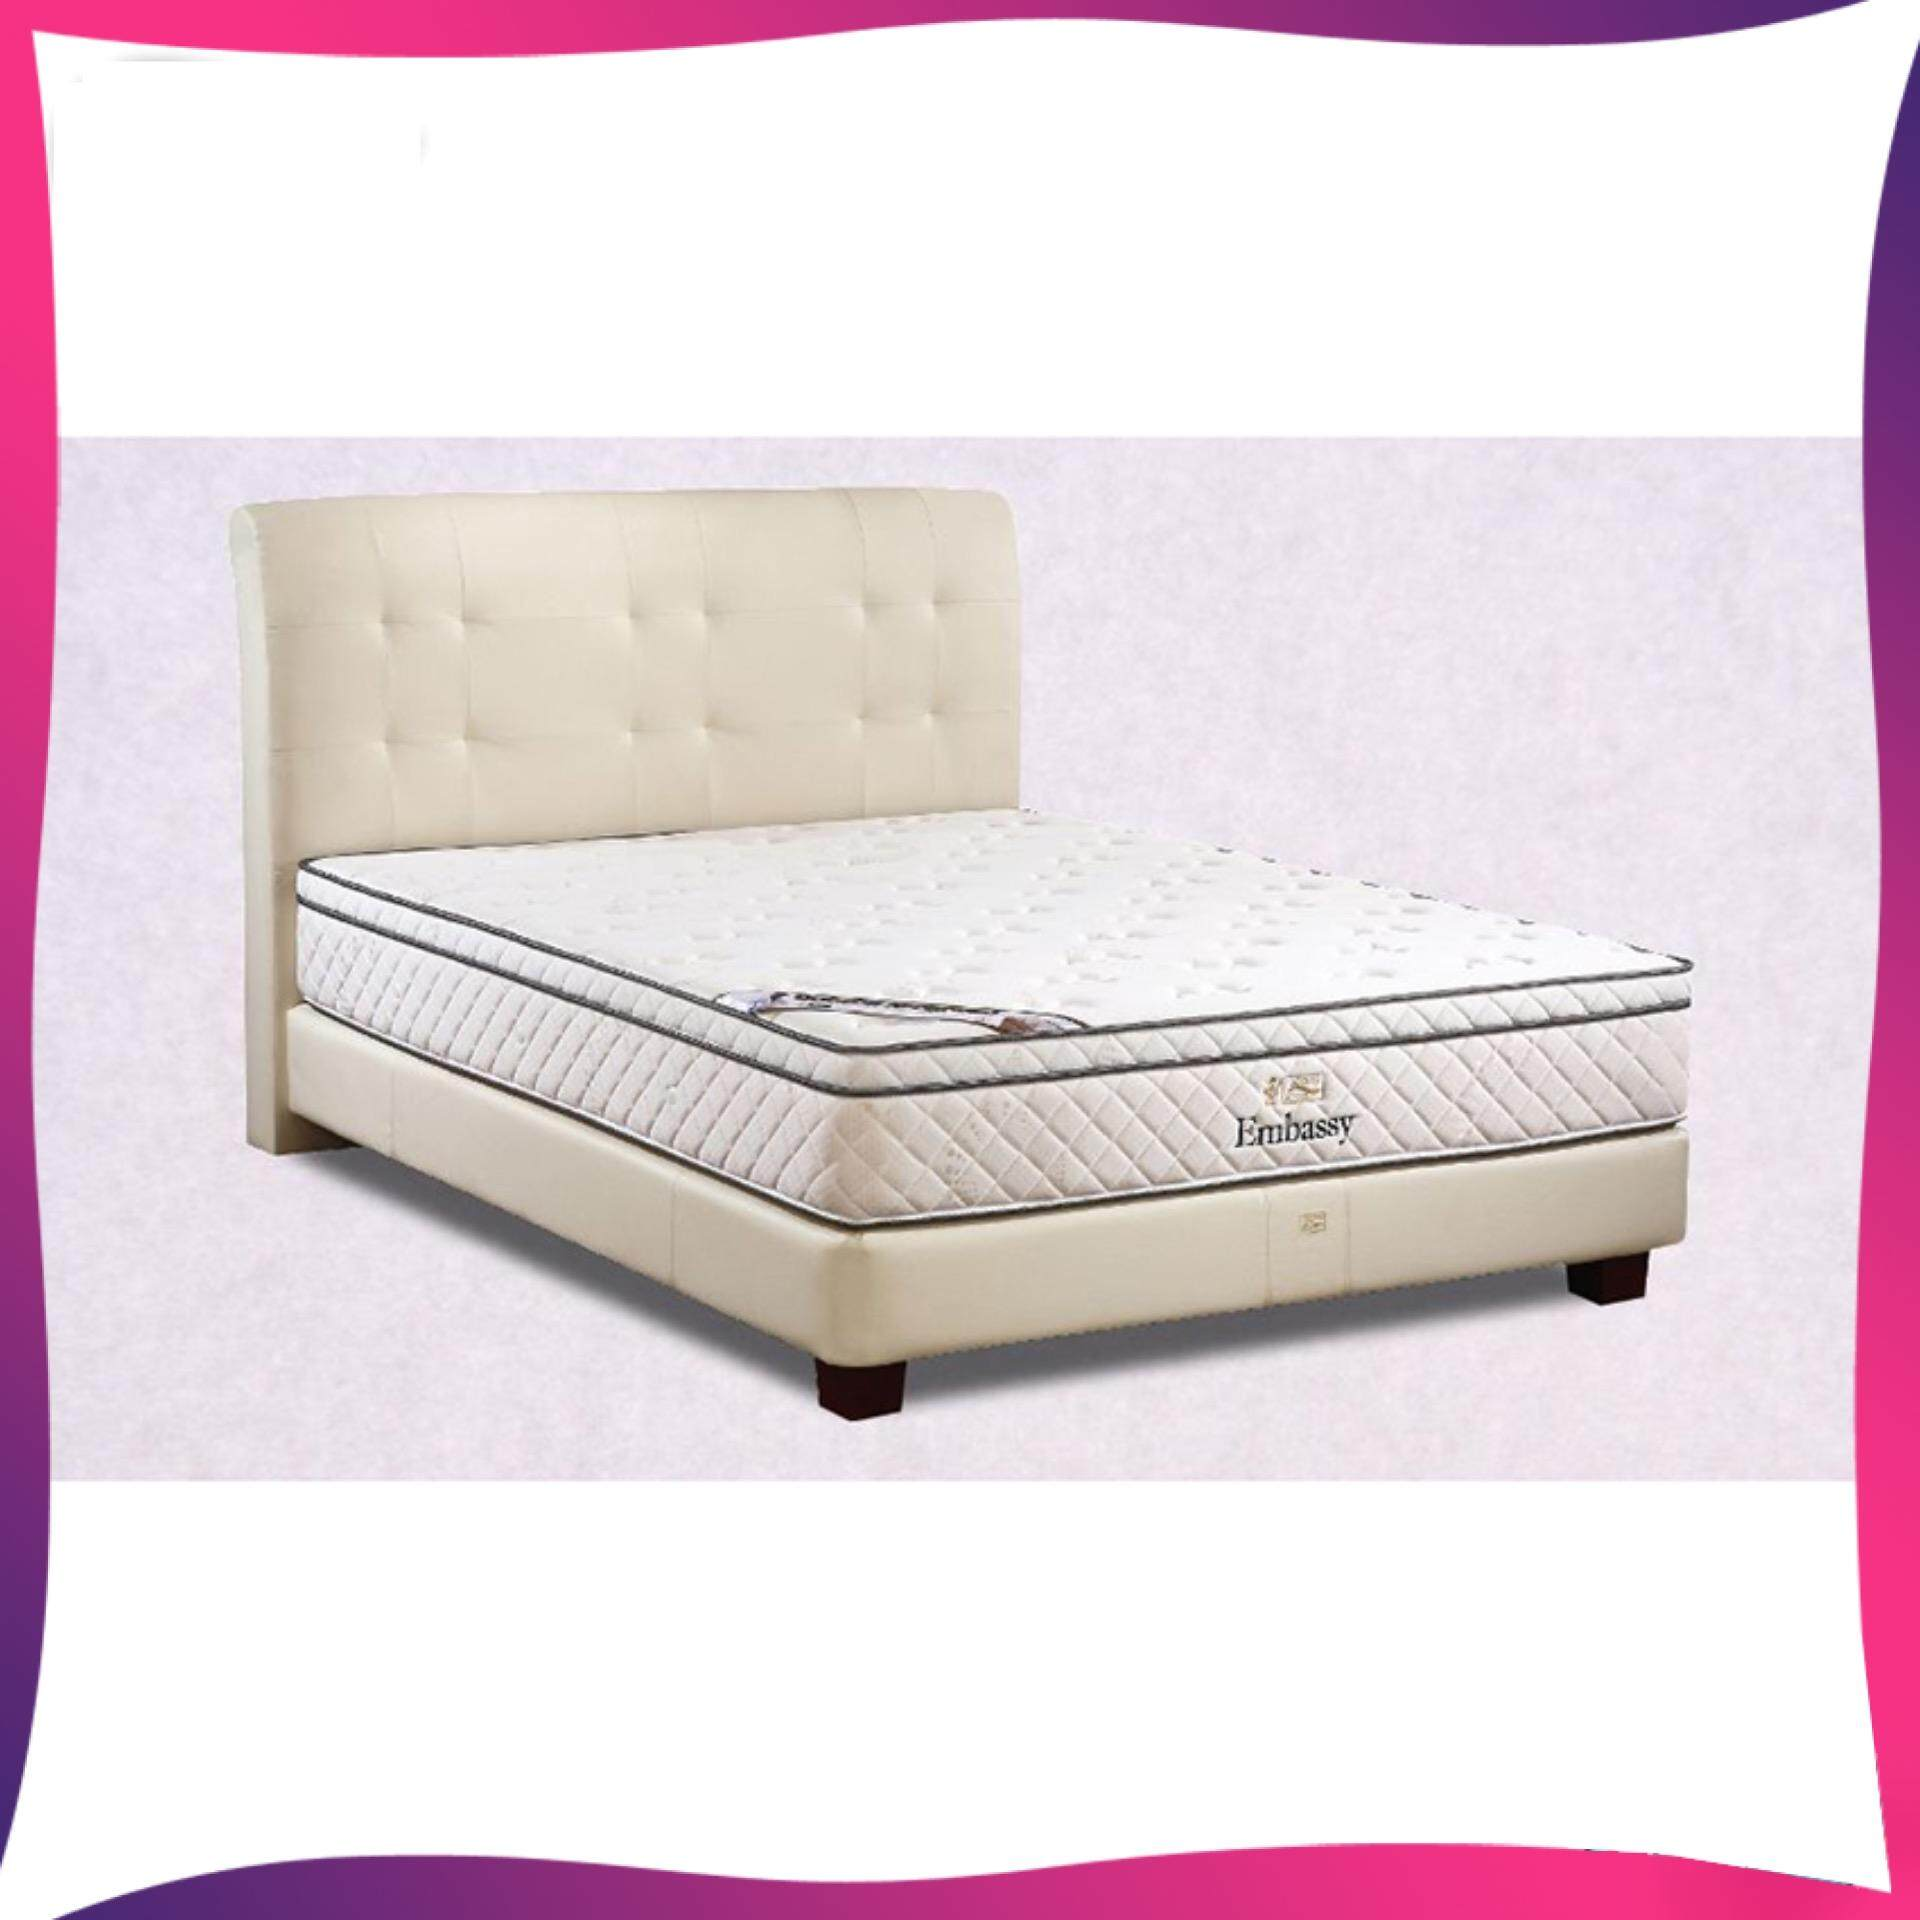 1ed8b4cfcec1a King Koil Embassy 11 inch Chiropractic Spring Mattress (10 Years Warranty)